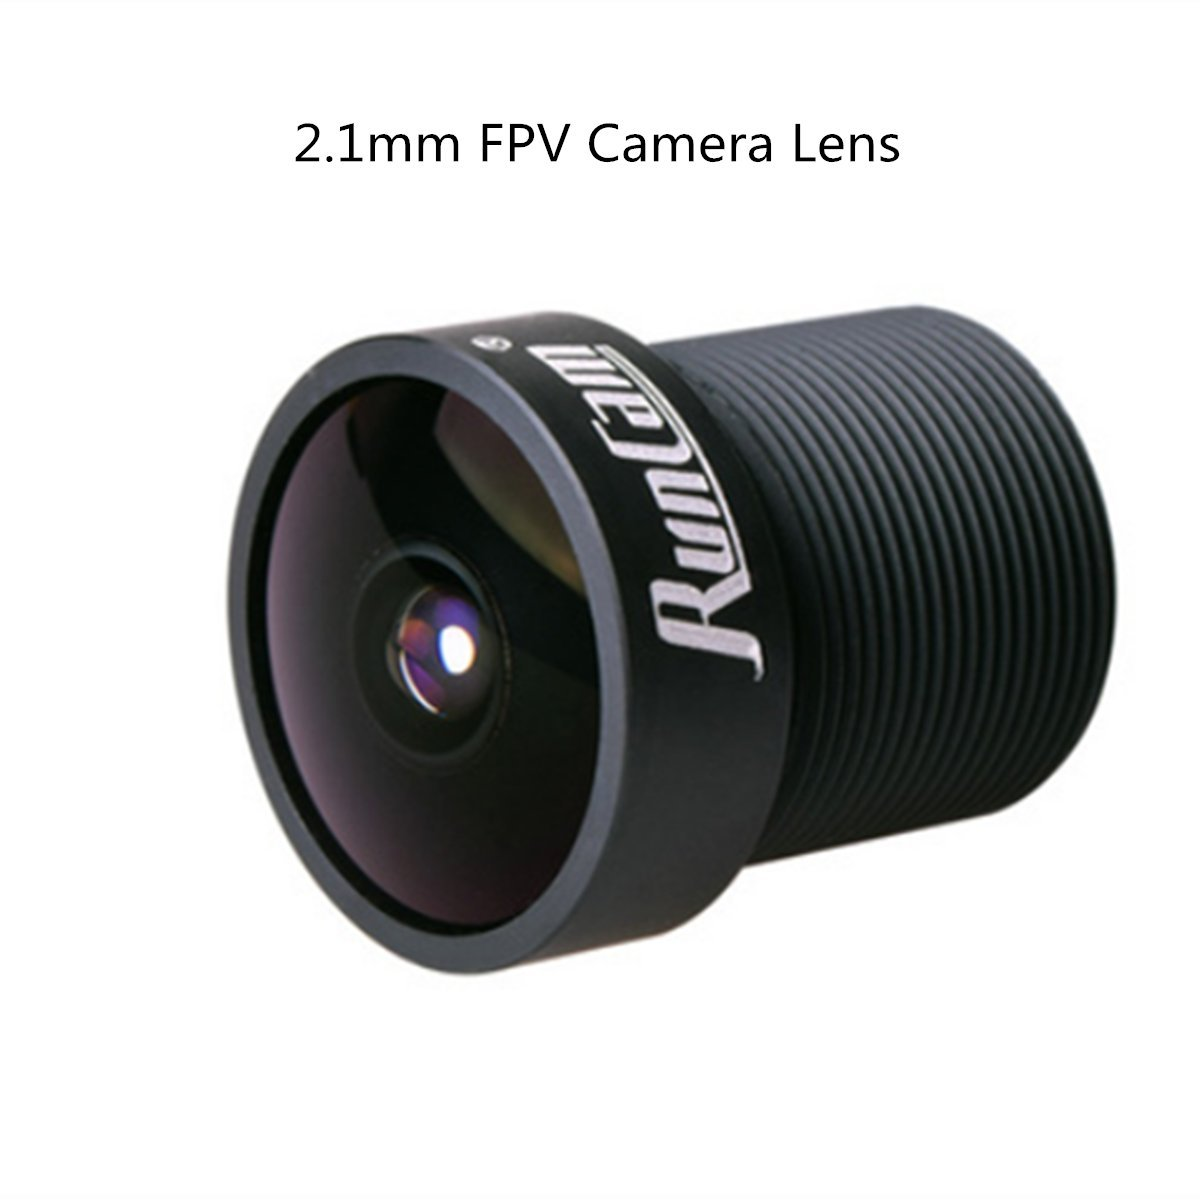 Crazepony RunCam RC21 FPV Camera Lens 2.1mm FOV 165 Degree Wide Angle for Runcam Swift 2 Camera